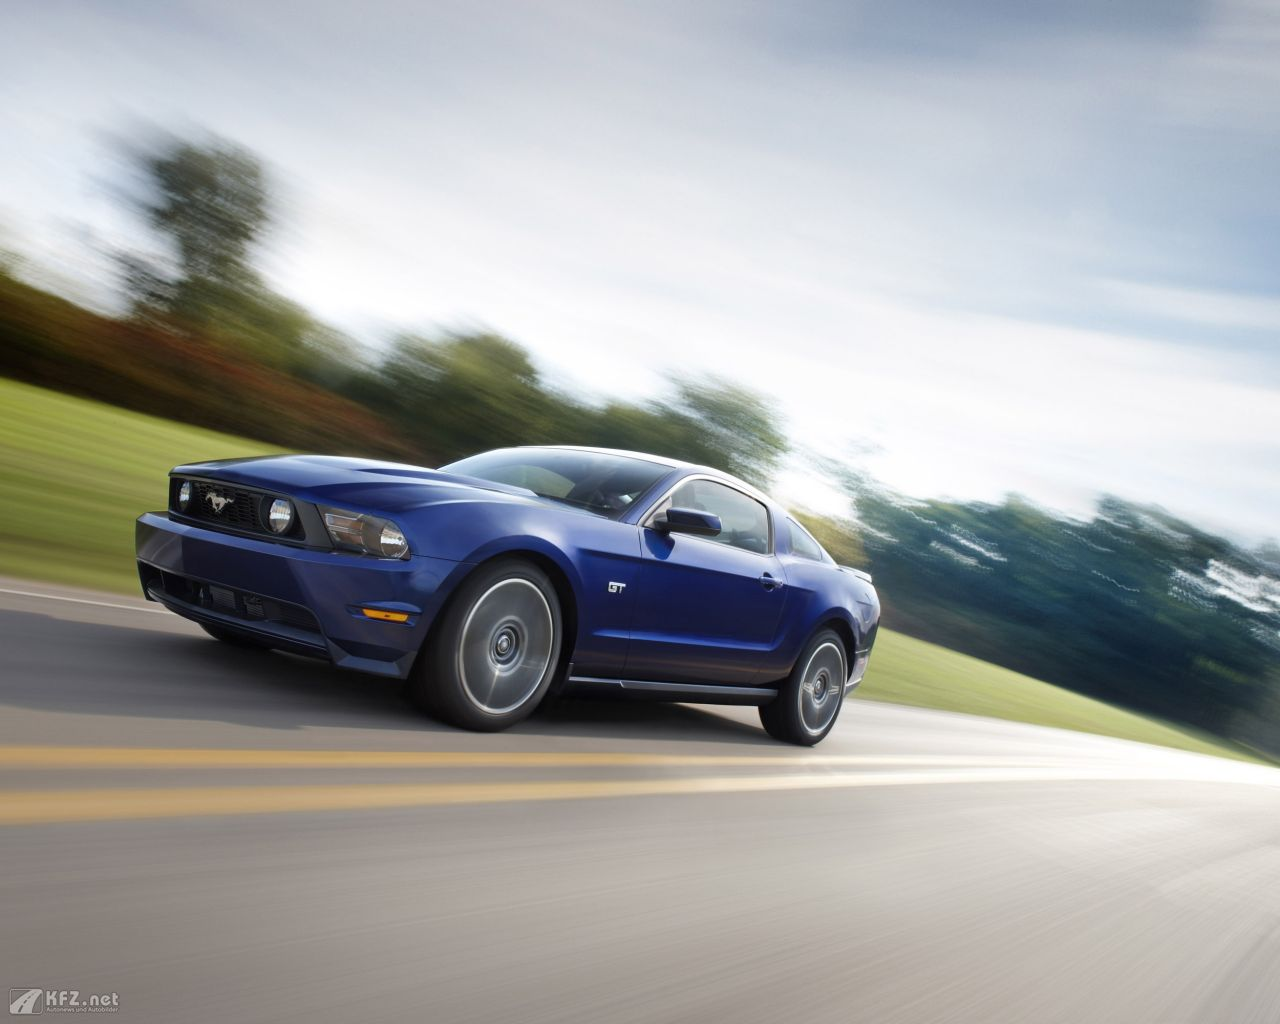 ford-mustang-1280x1024-3